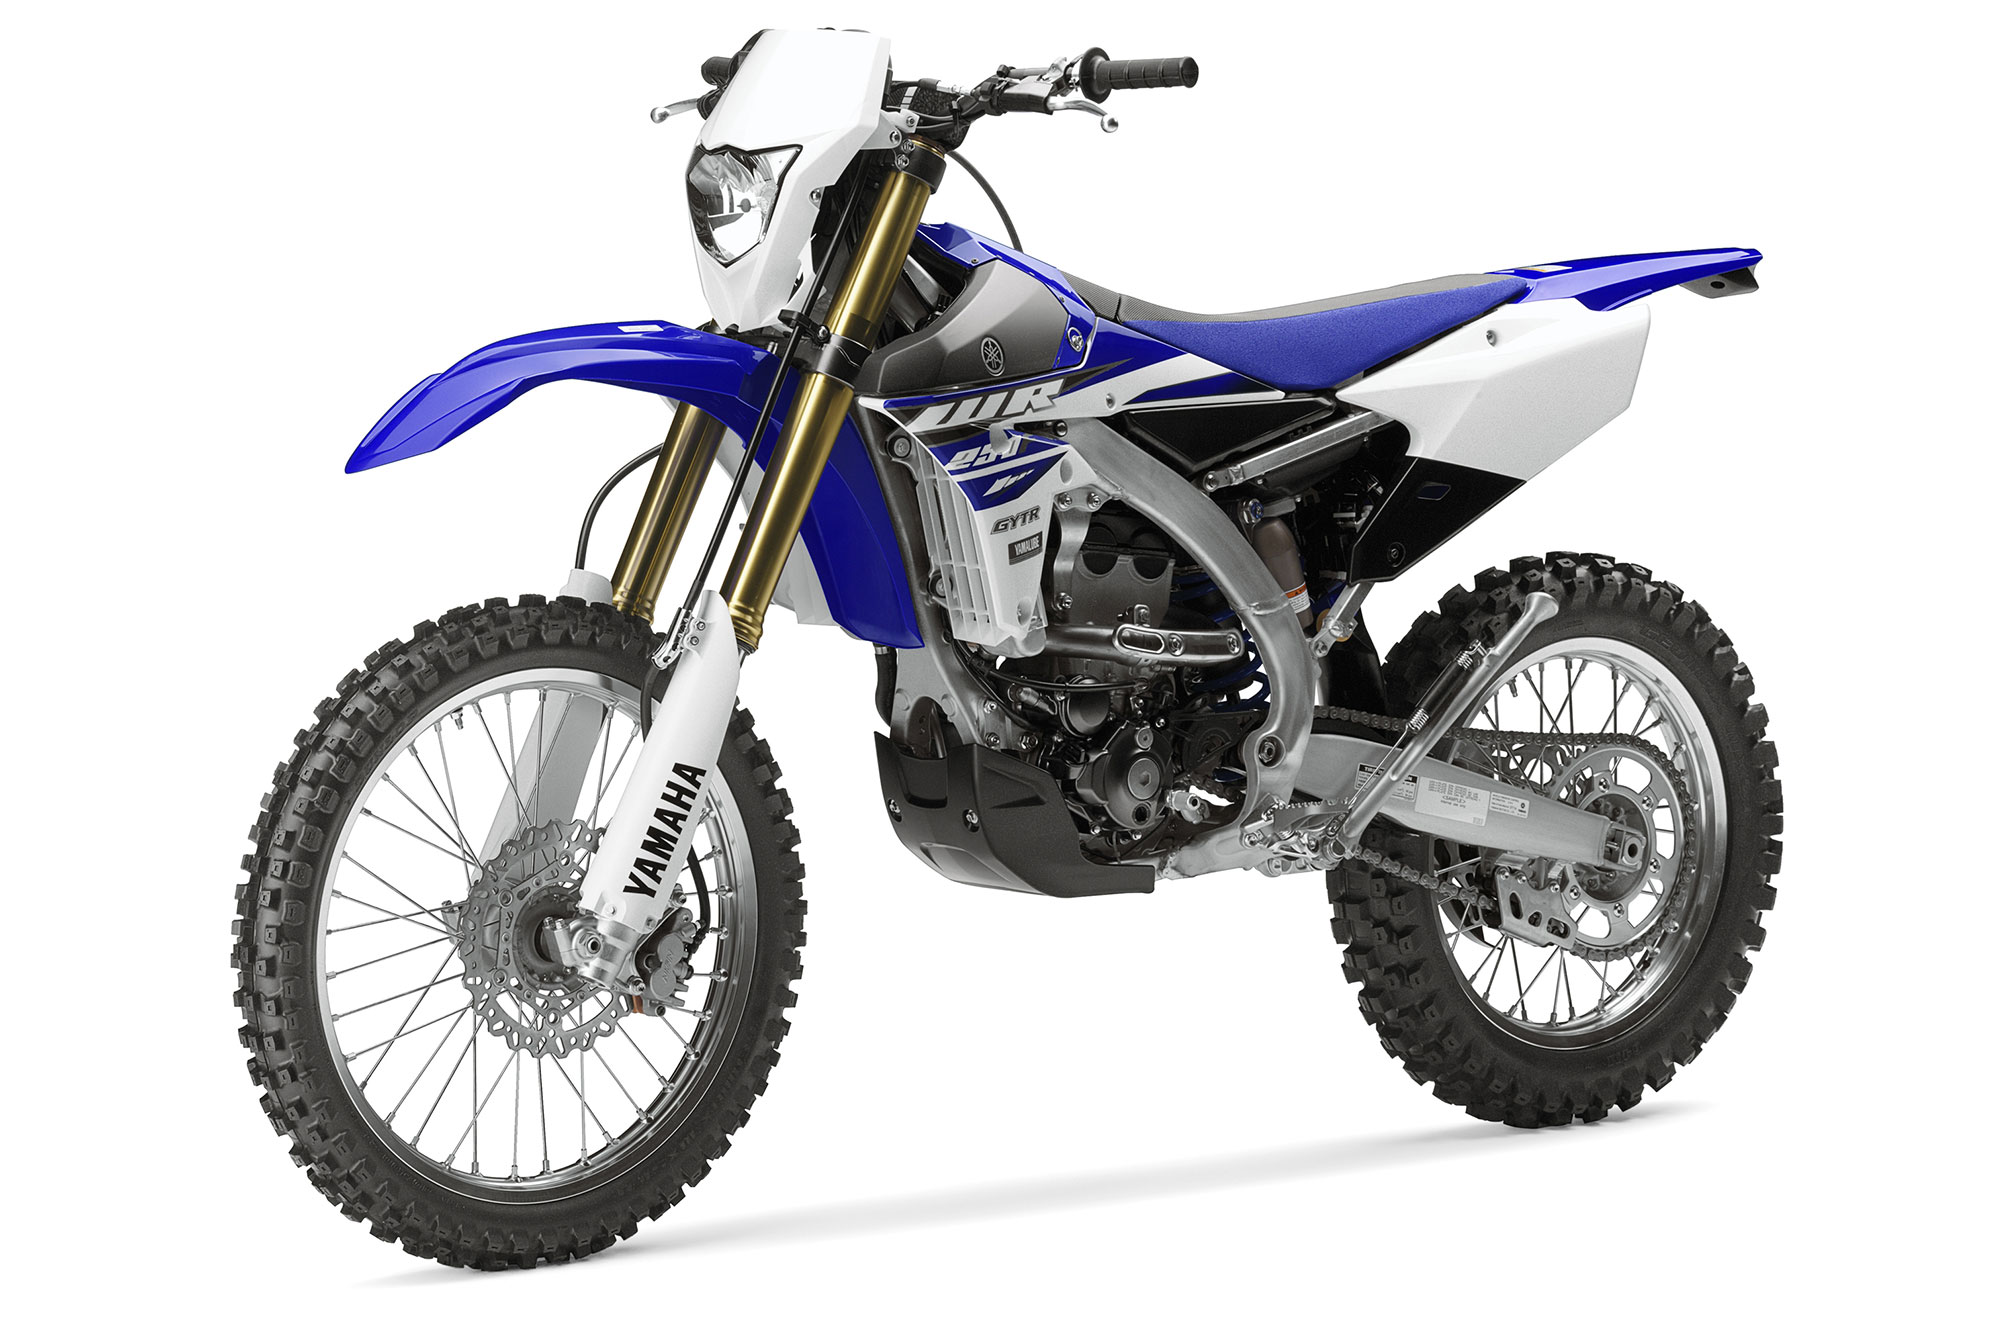 2015 yamaha wr250f review for 2015 yamaha motorcycles